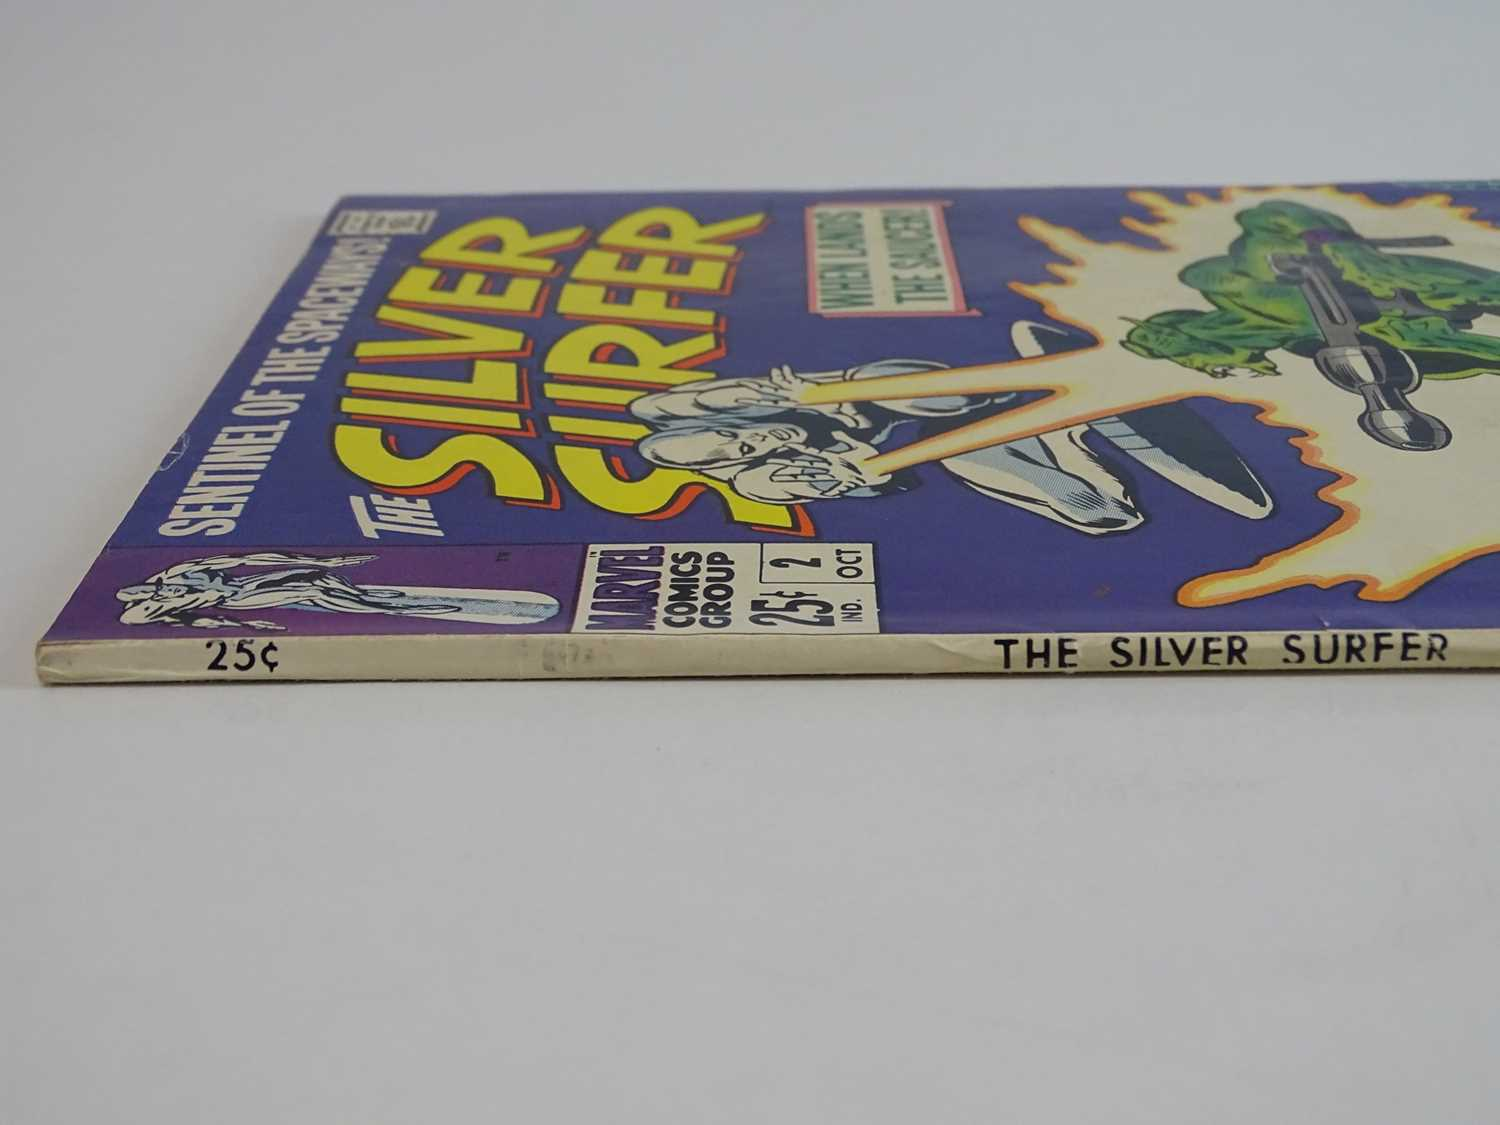 SILVER SURFER #2 - (1968 - MARVEL) - First appearance of the Brotherhood of Badoon + backup story - Image 7 of 8